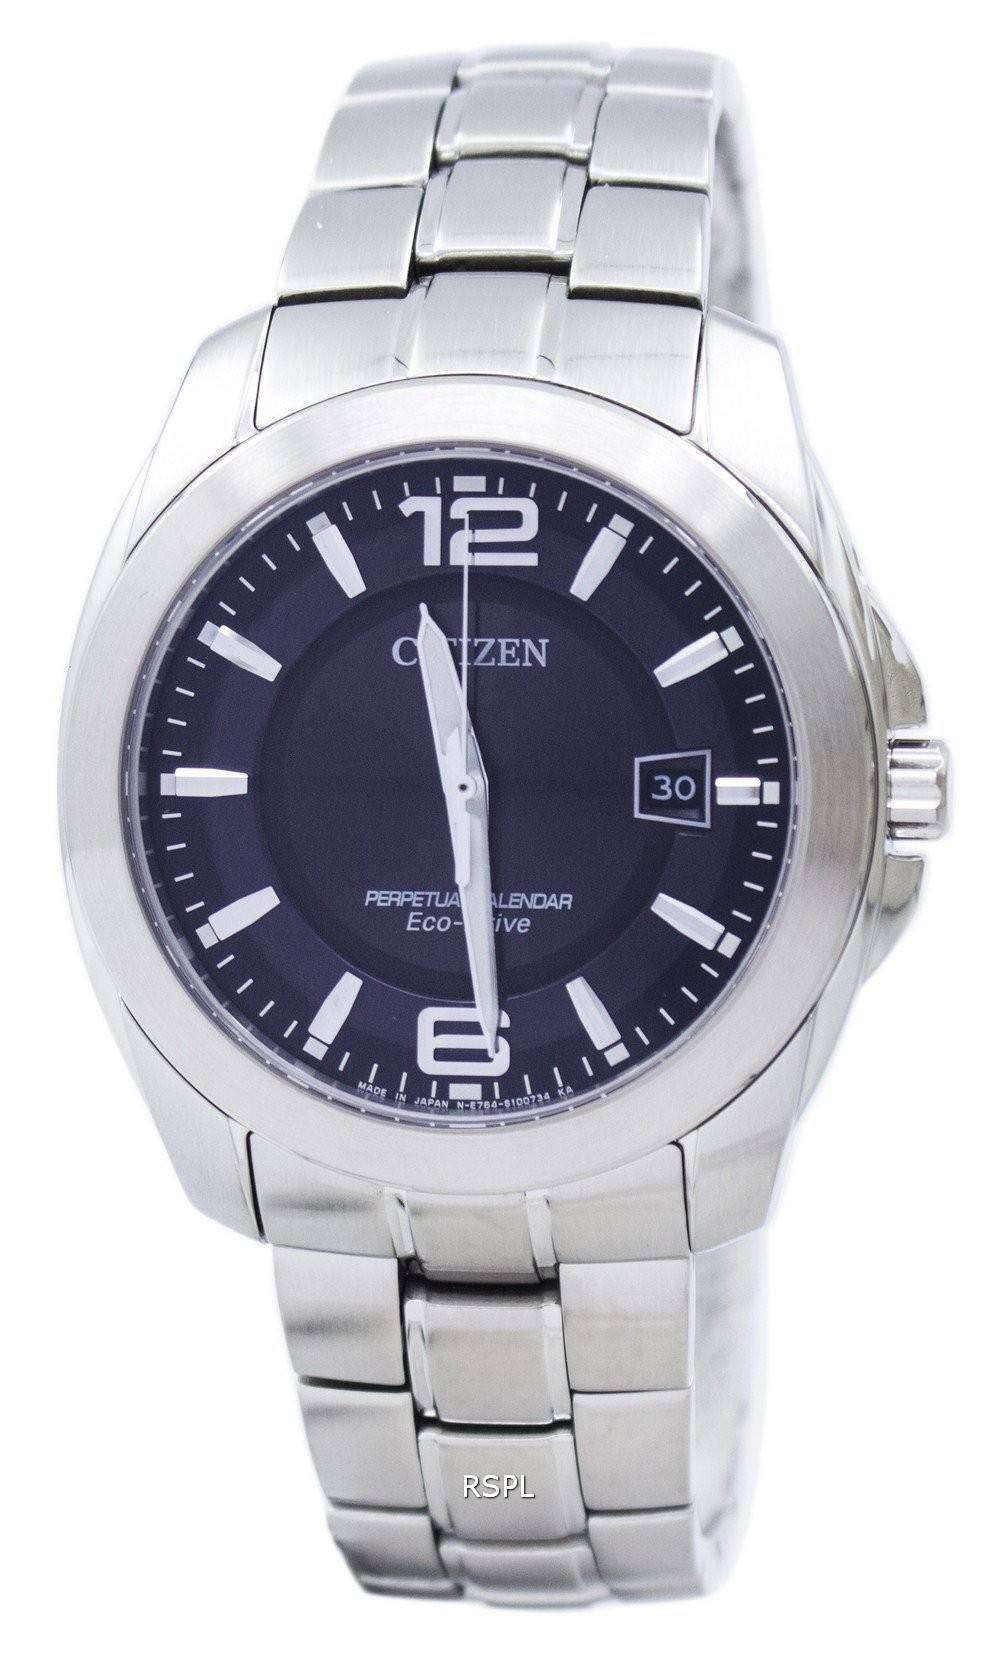 Perpetual Calendar Watches : Citizen eco drive perpetual calendar bl e men